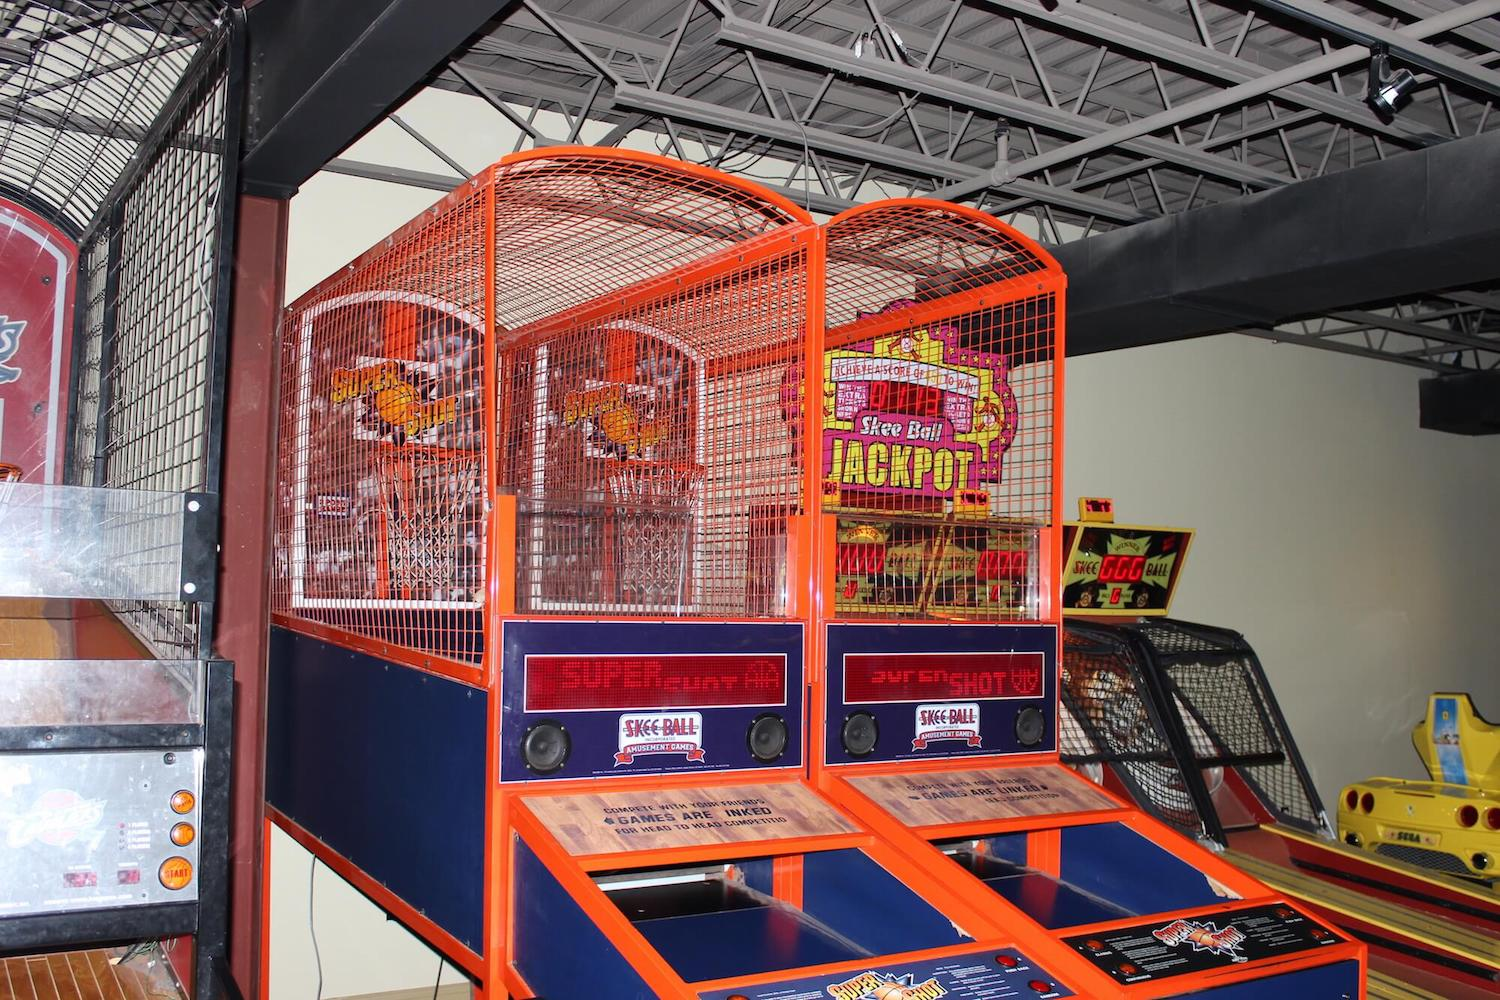 Play Arcade + Kitchen has 85 different arcade games.